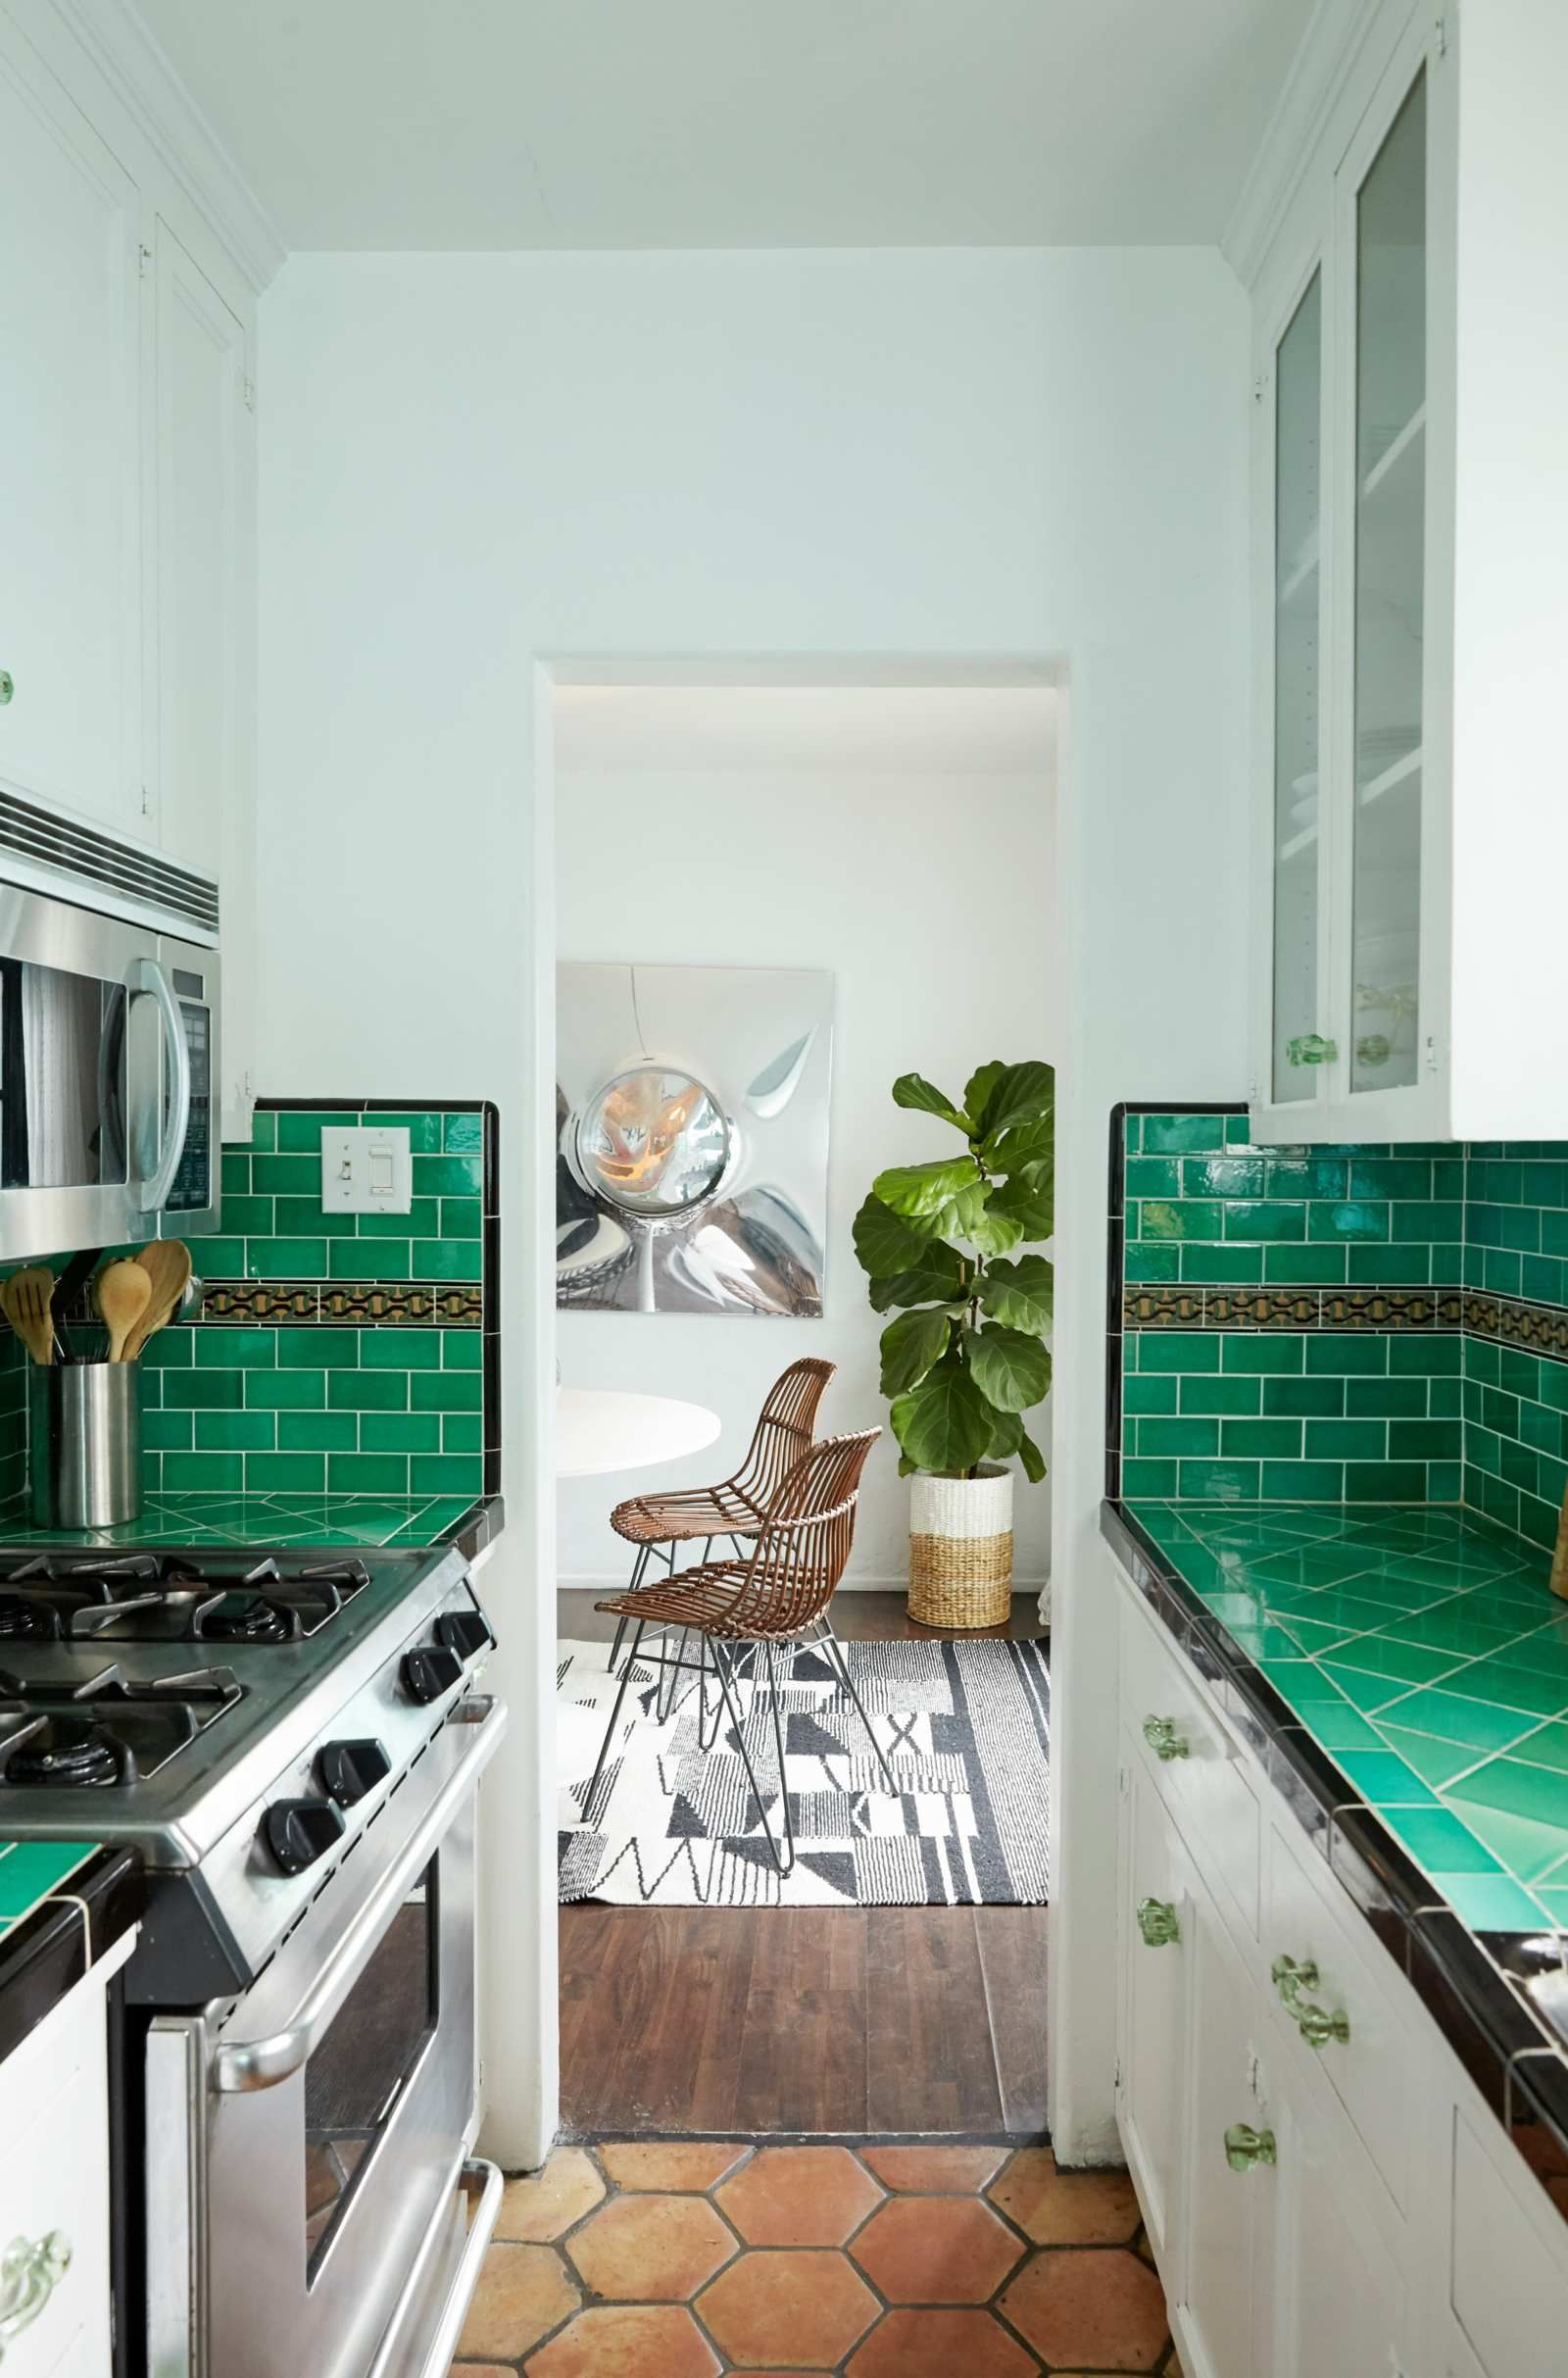 How To Decorate A Los Angeles Bungalow With An App And A Tap Of The Finger